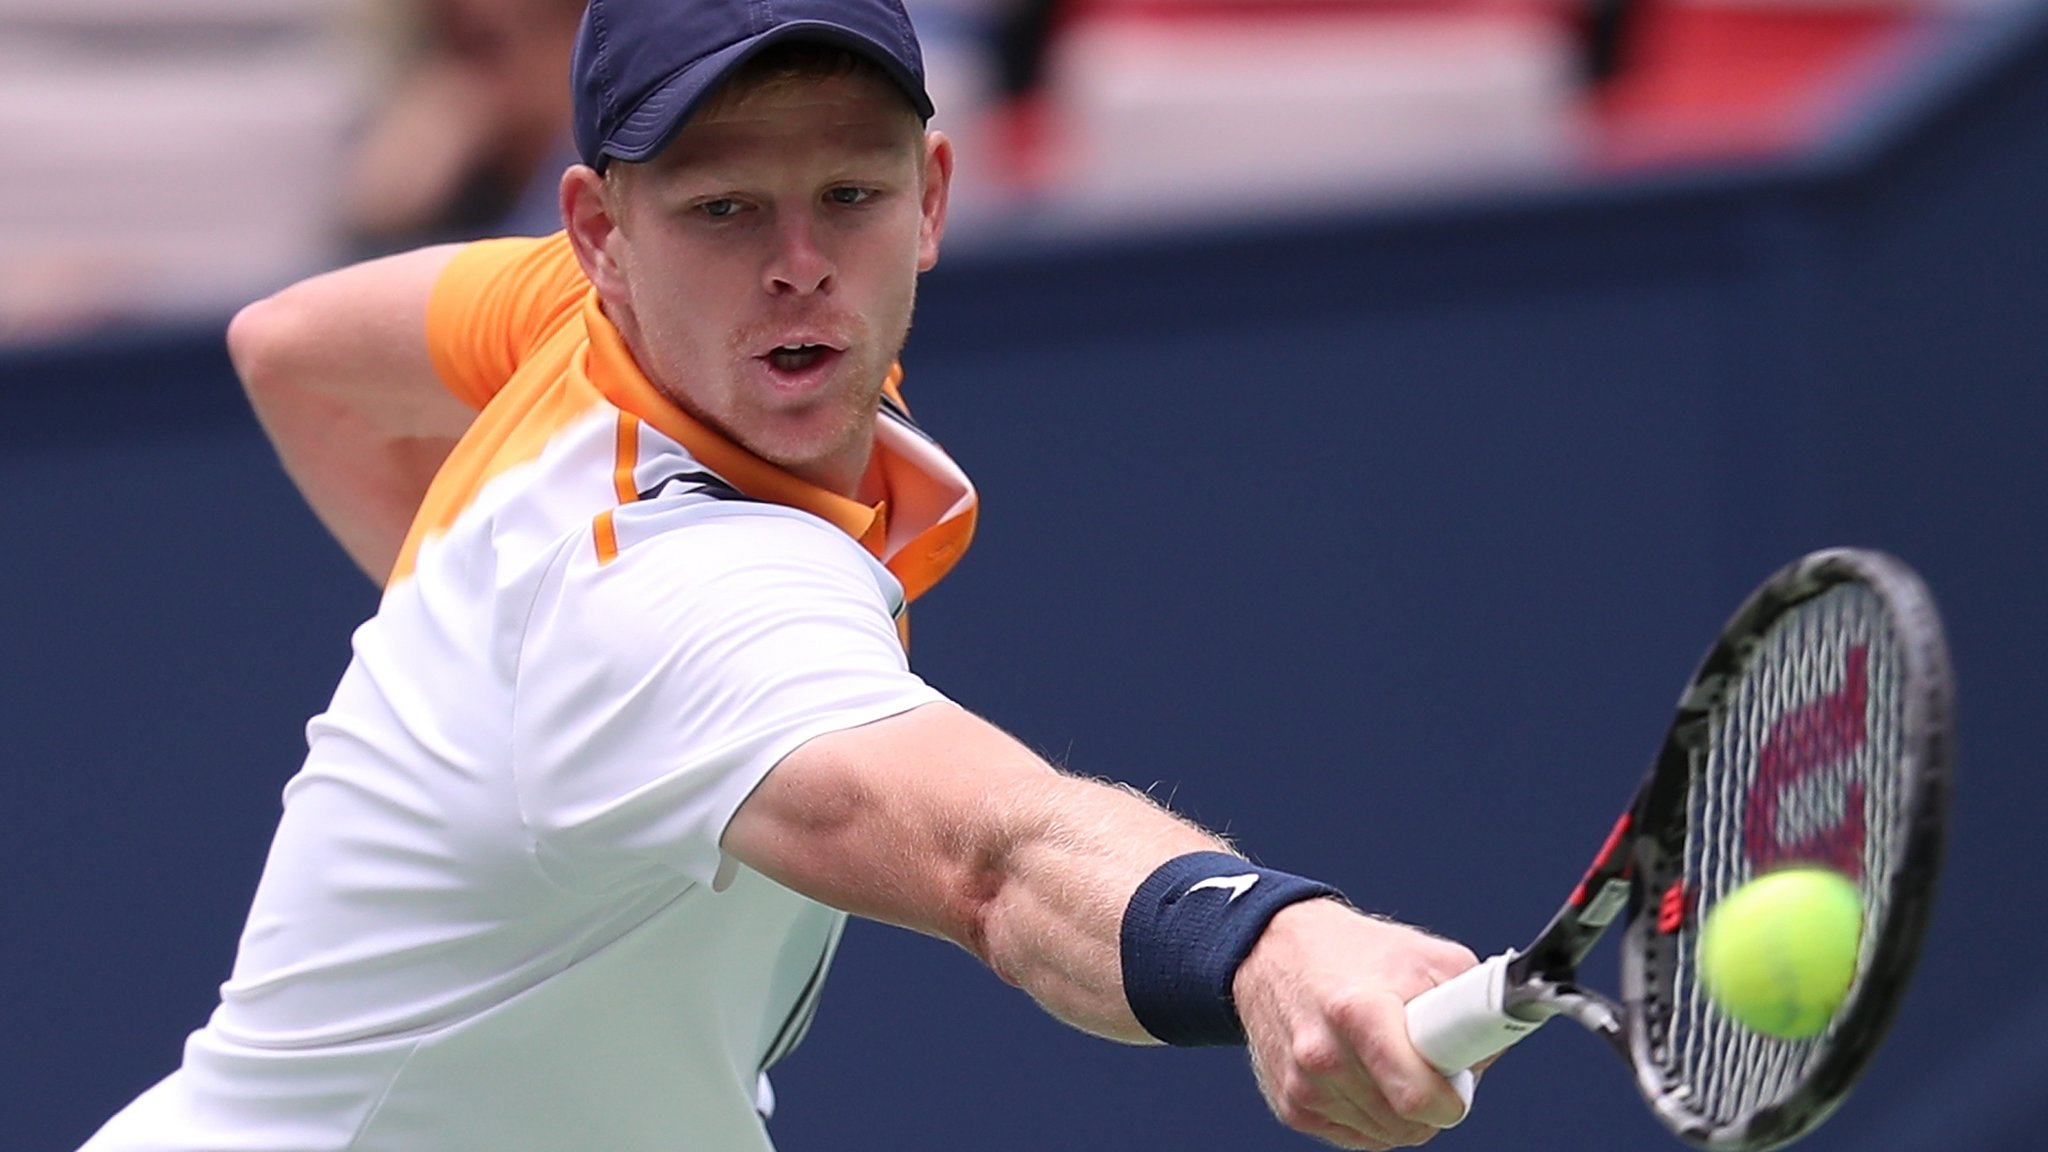 European Open: Kyle Edmund into semi-finals with walkover